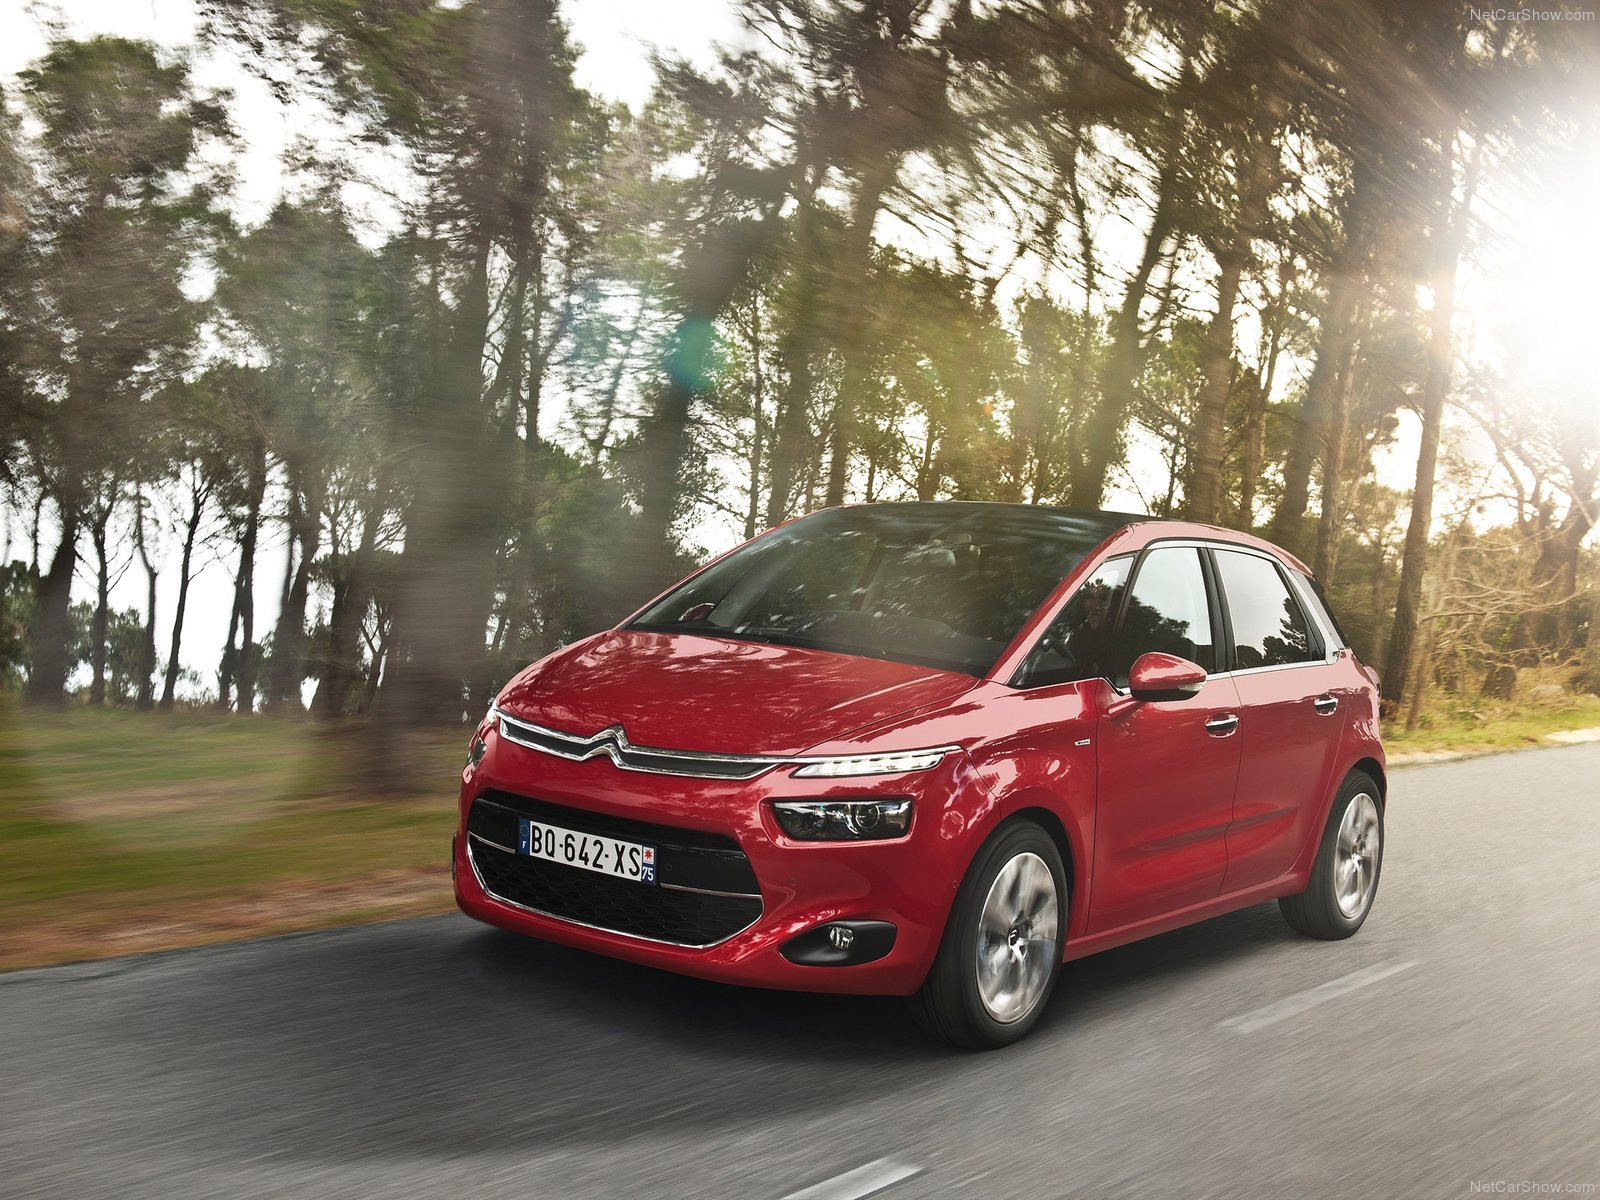 Citroen C4 Picasso photo 157687